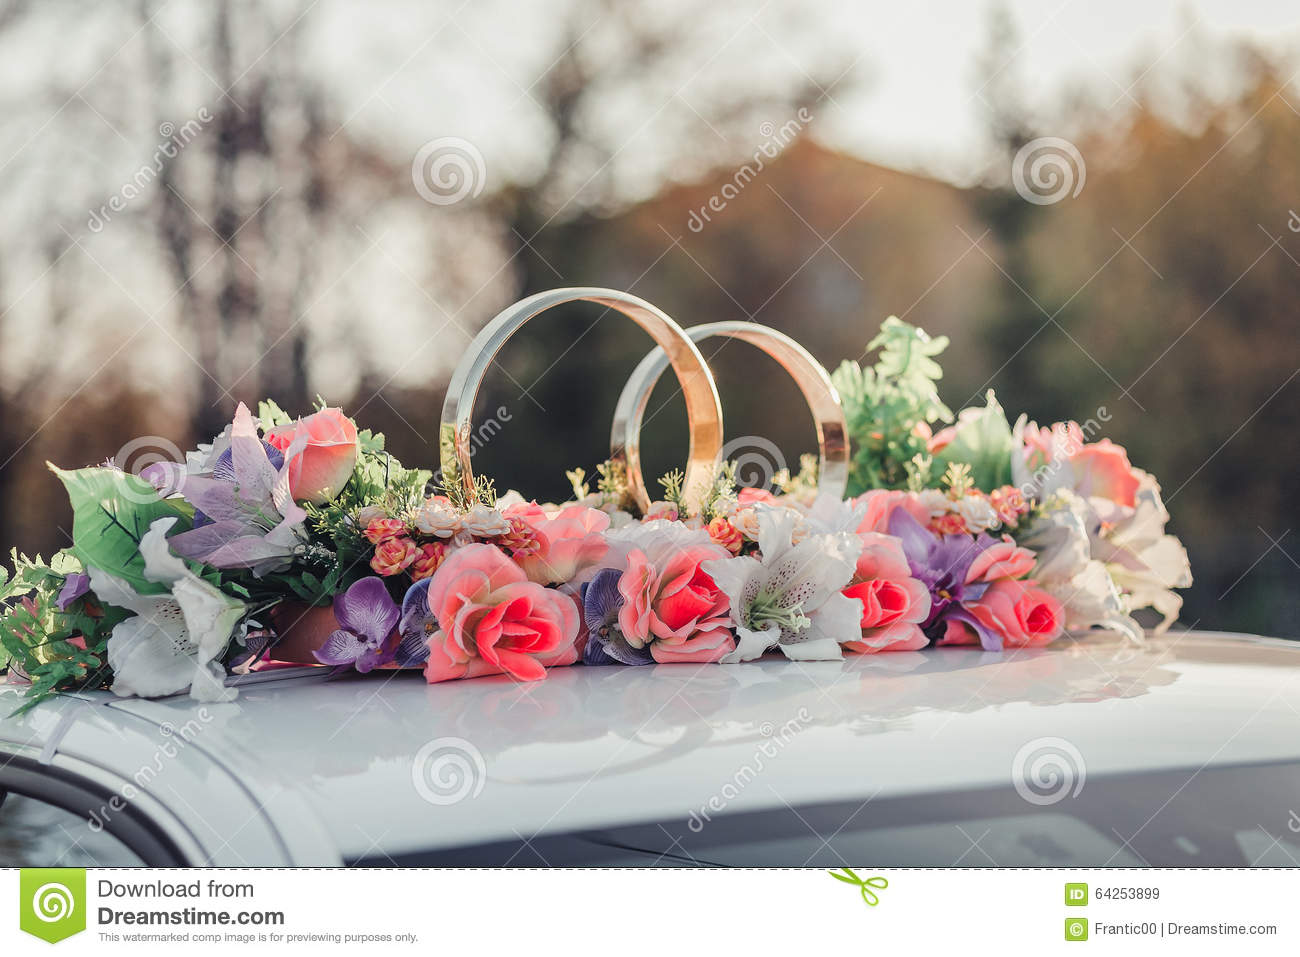 Wedding car decoration with flowers and golden rings stock image download comp junglespirit Choice Image